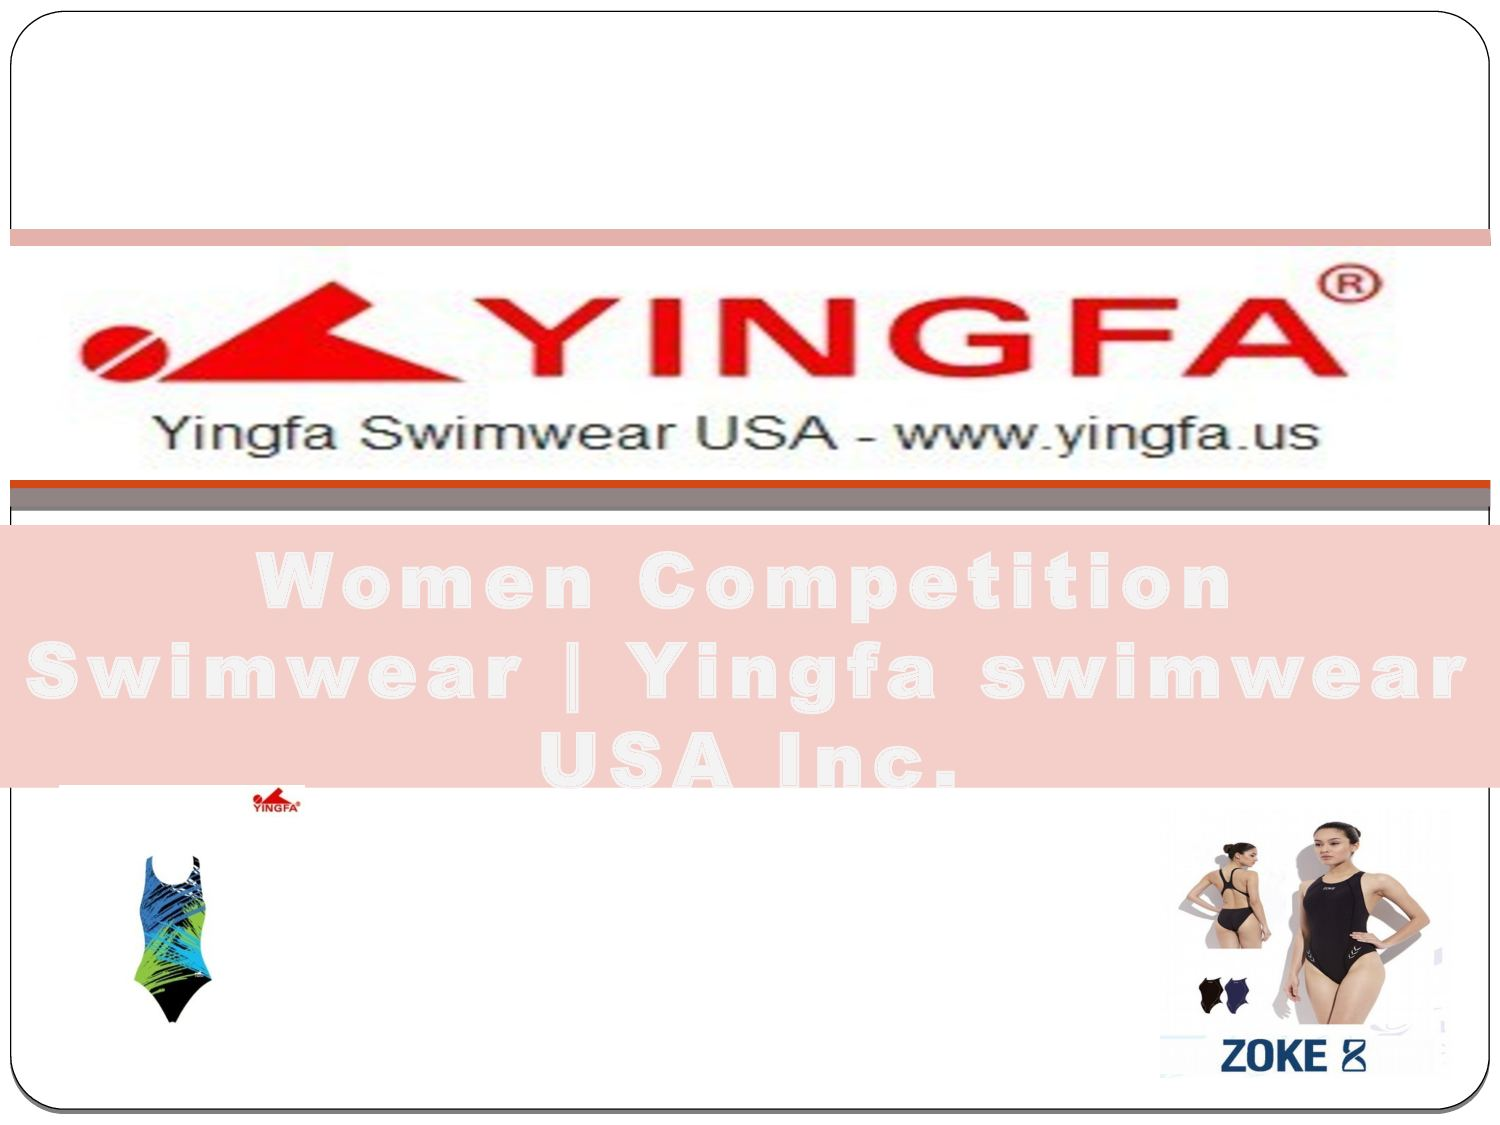 09e020c5b9 Women Competition Swimwear Yingfa. by Yingfa swimwear USA Inc.